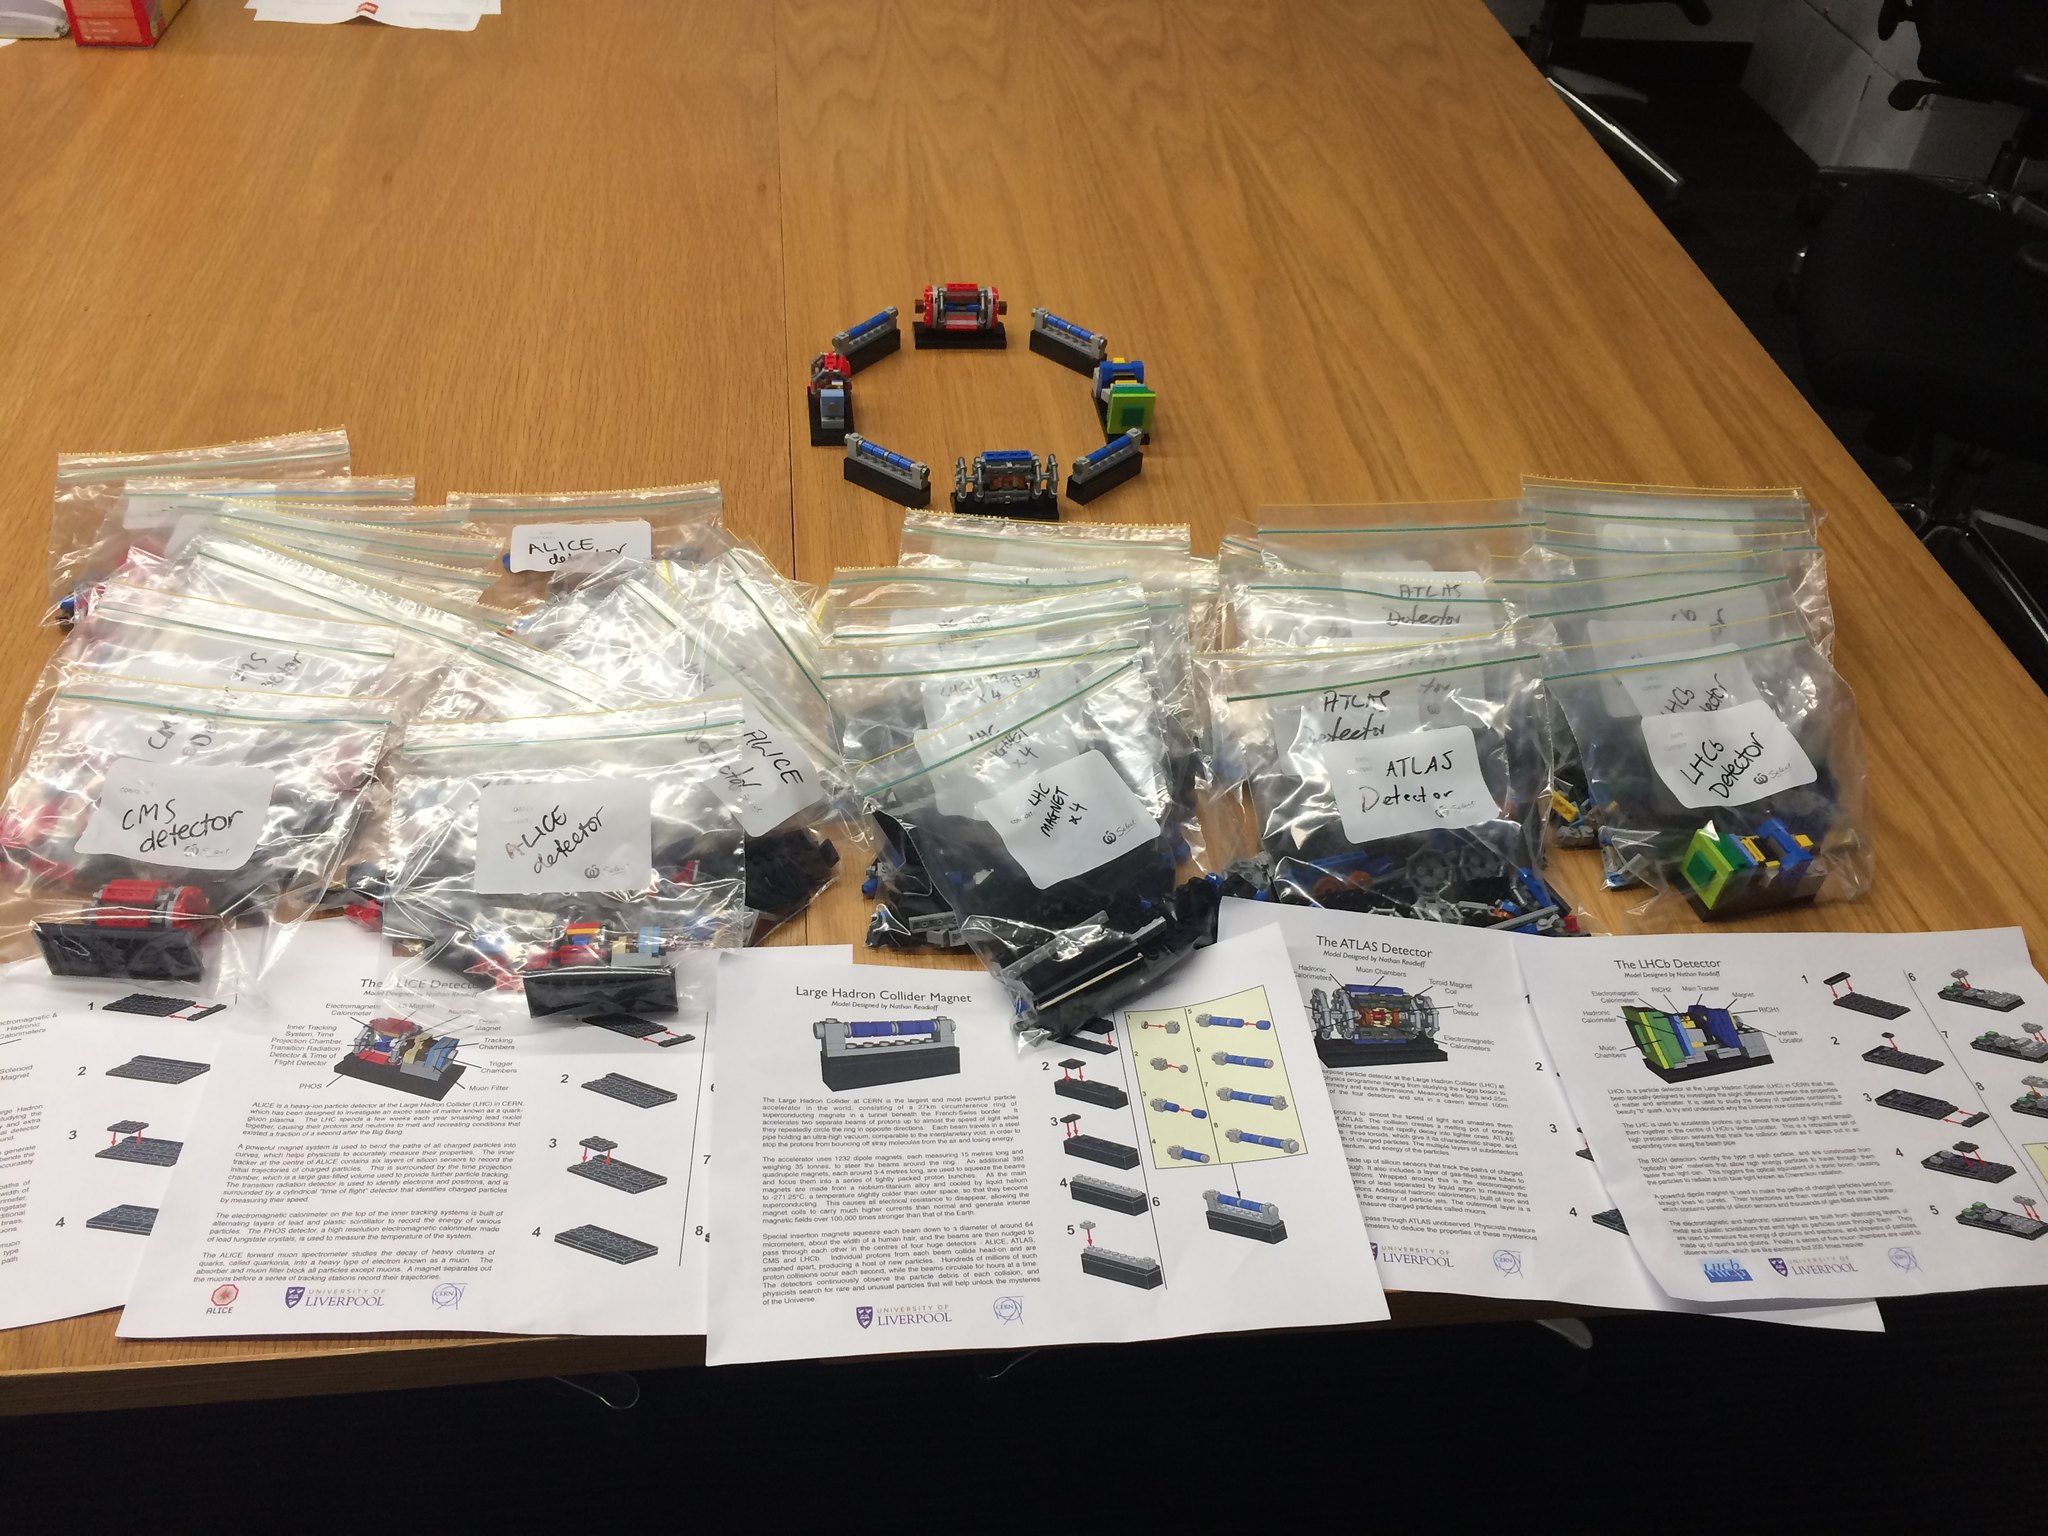 Bags and bags of micro LHC Lego